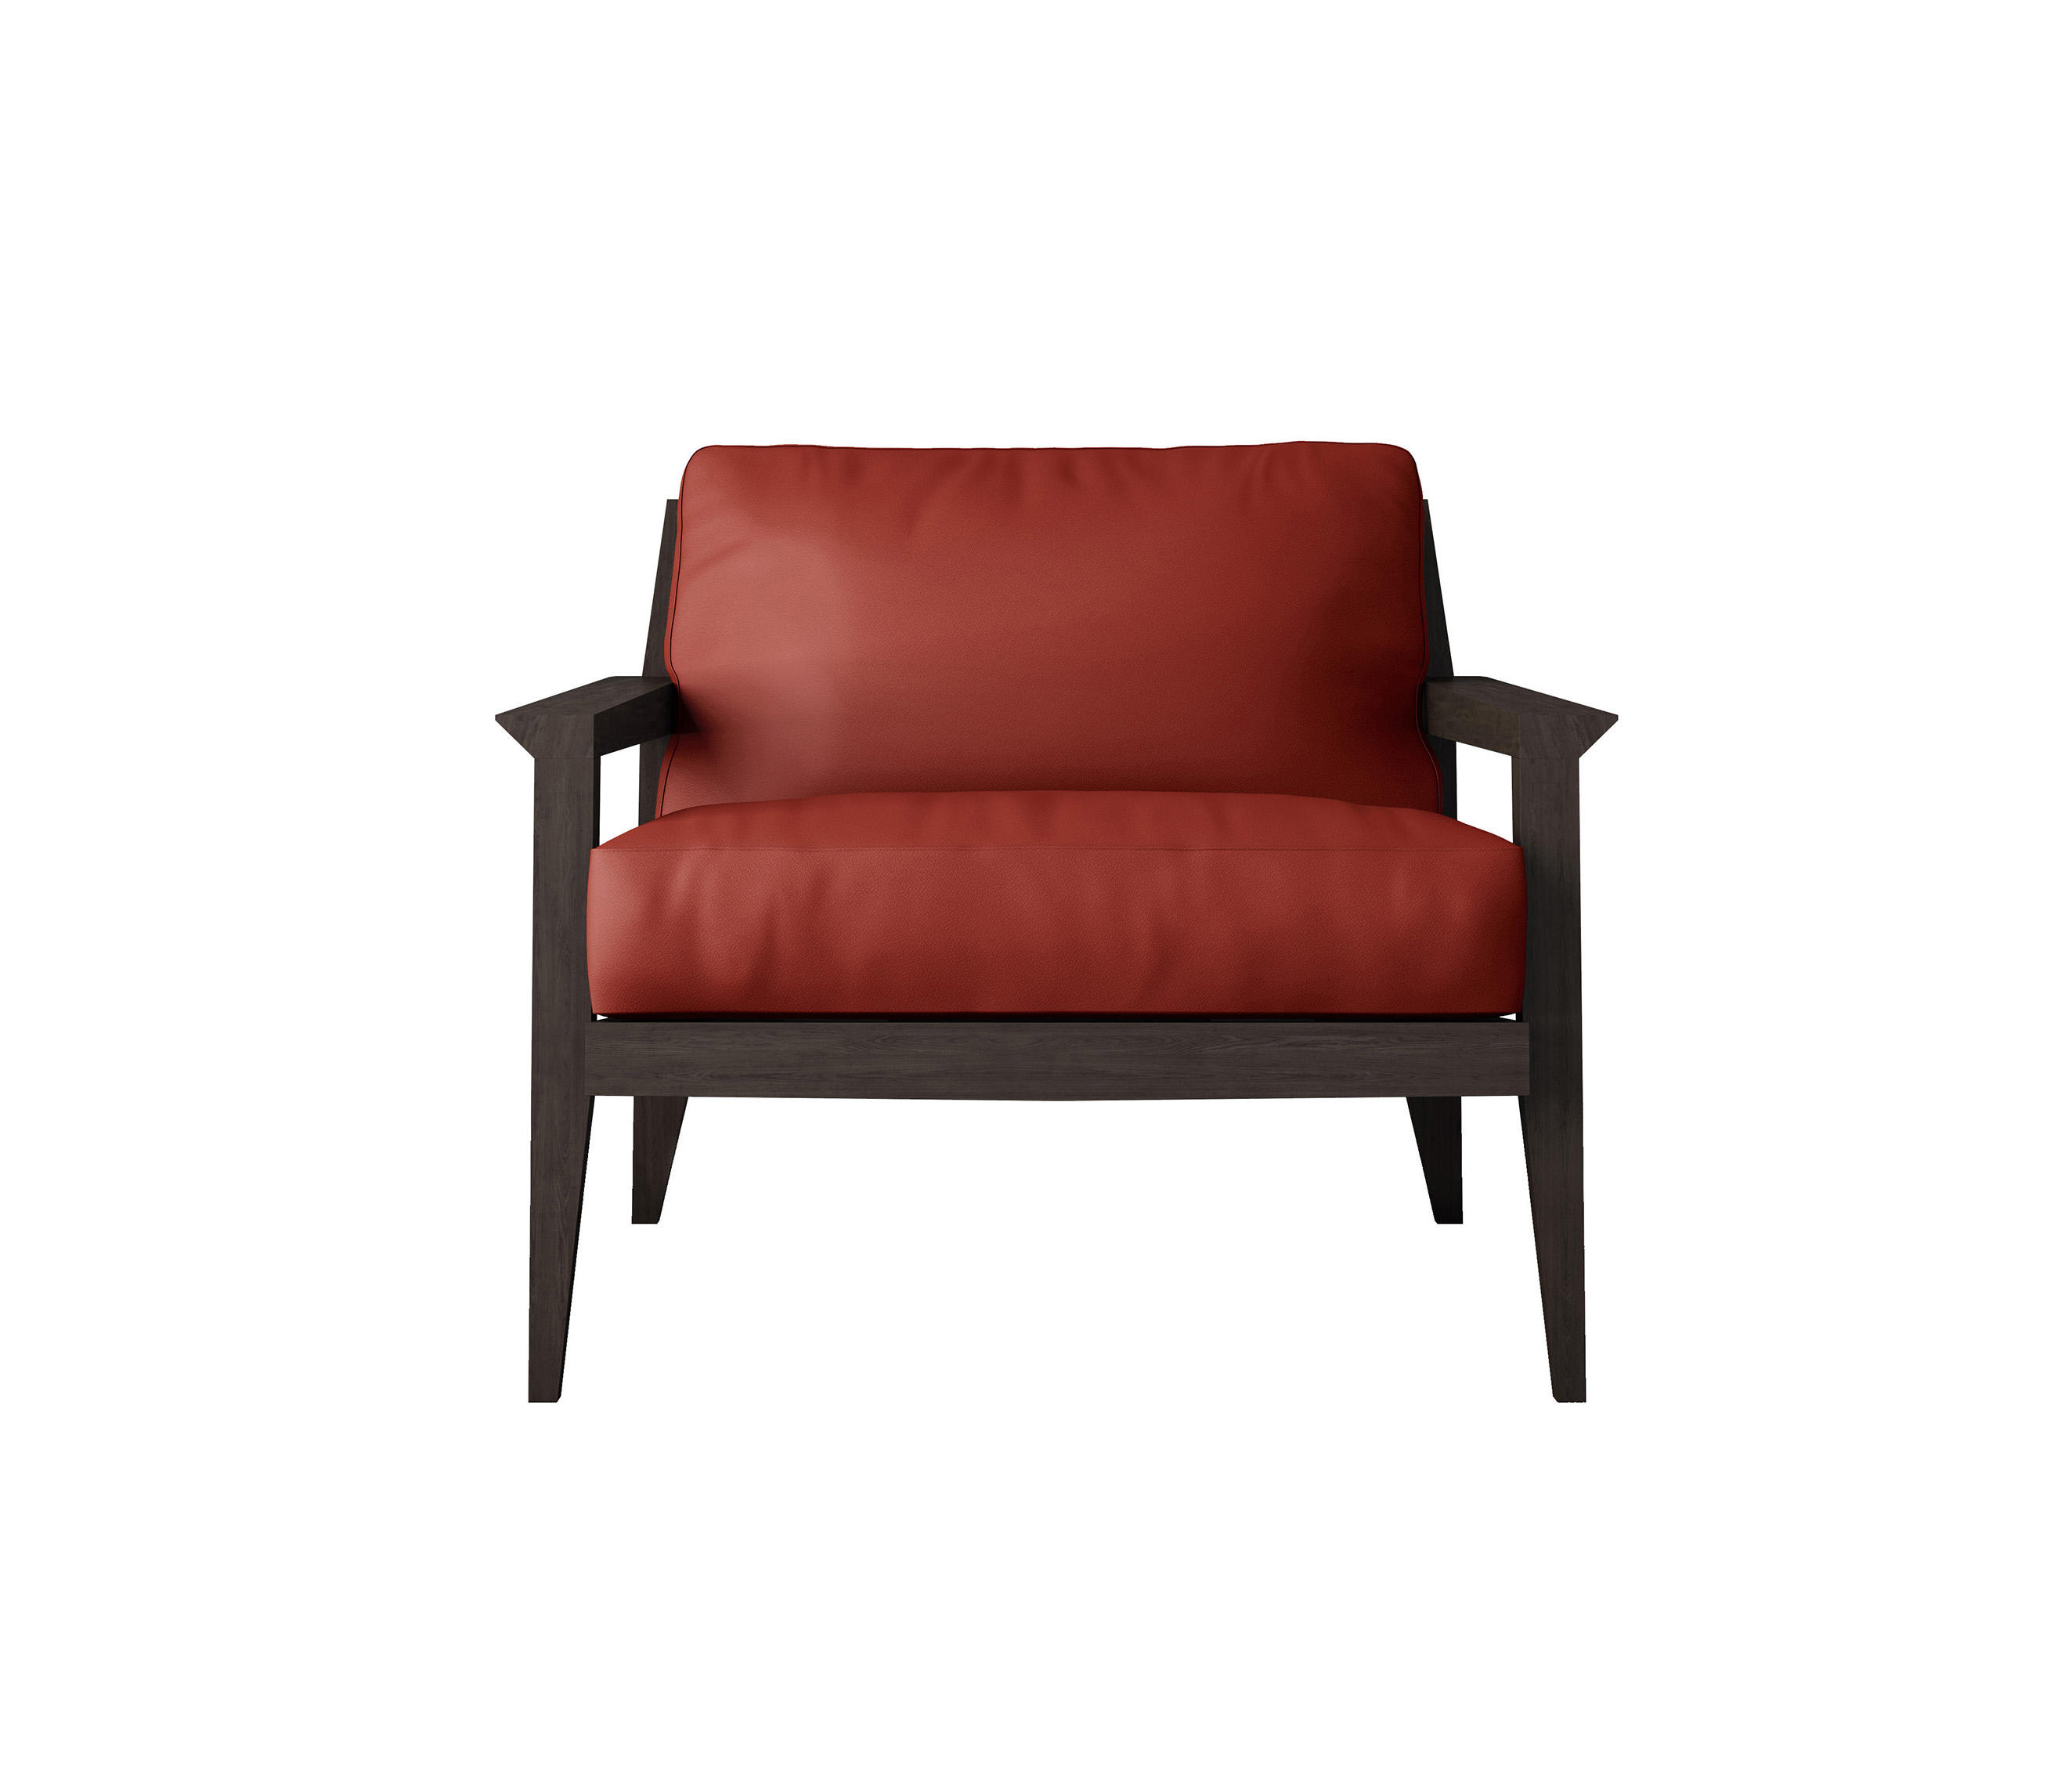 air sofa chair price in stan recliner with chaise stanley armchair lounge sofas from case furniture